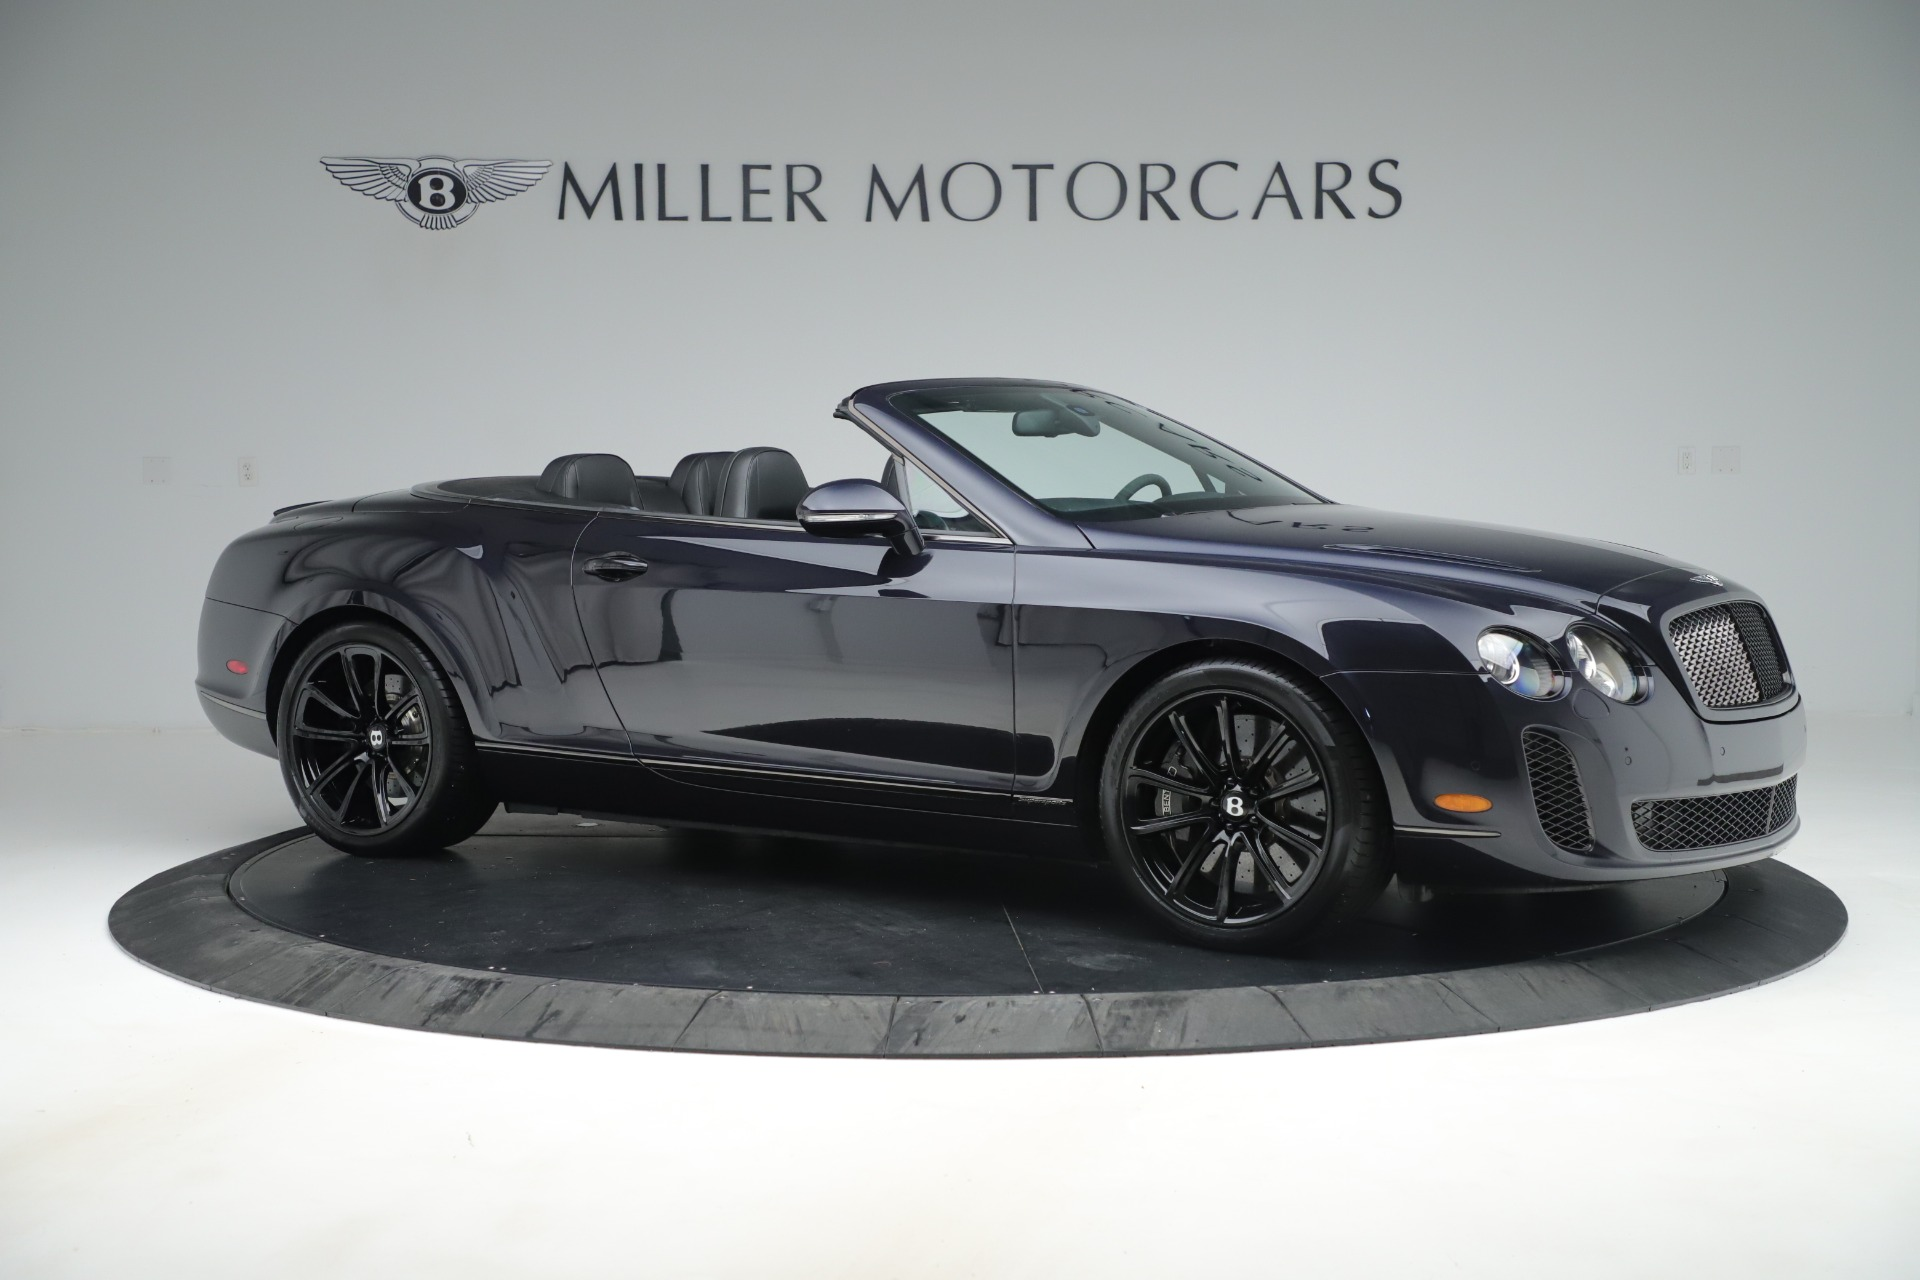 Used 2012 Bentley Continental Supersports Supersports For Sale In Greenwich, CT 3214_p10